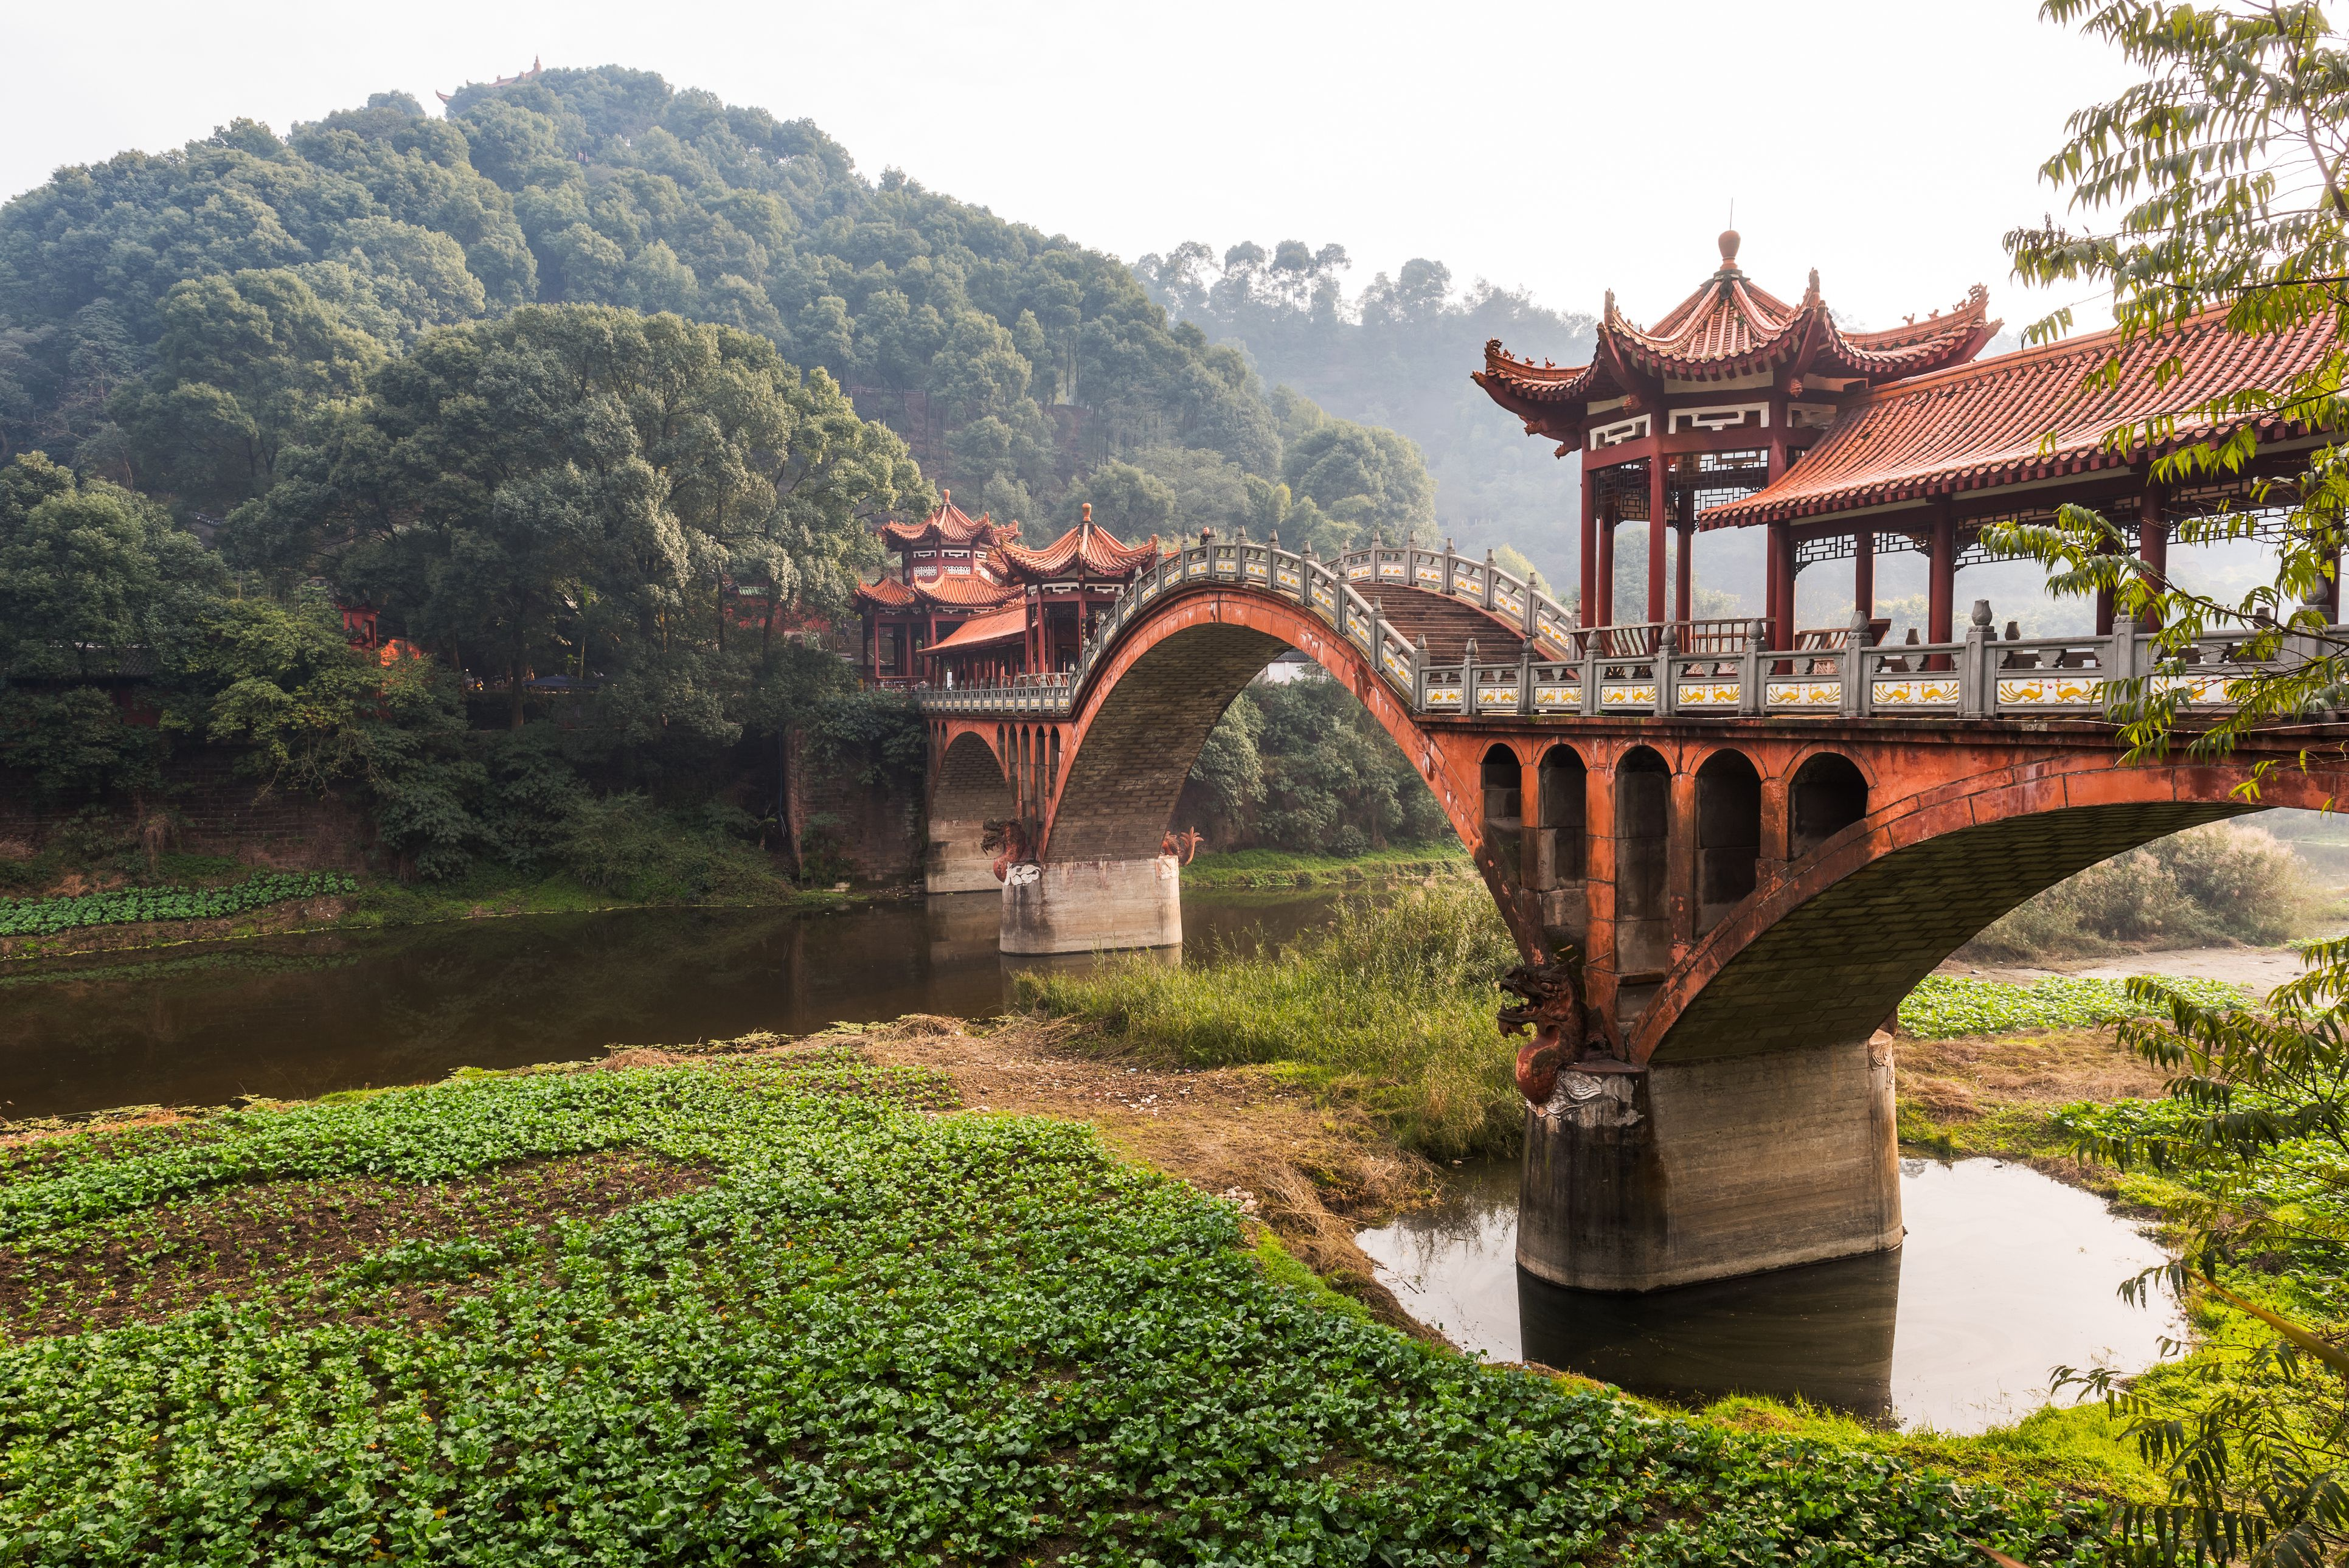 ZhuoYing, an ancient stone bridge outside of Chengdu, the capital of Sichuan